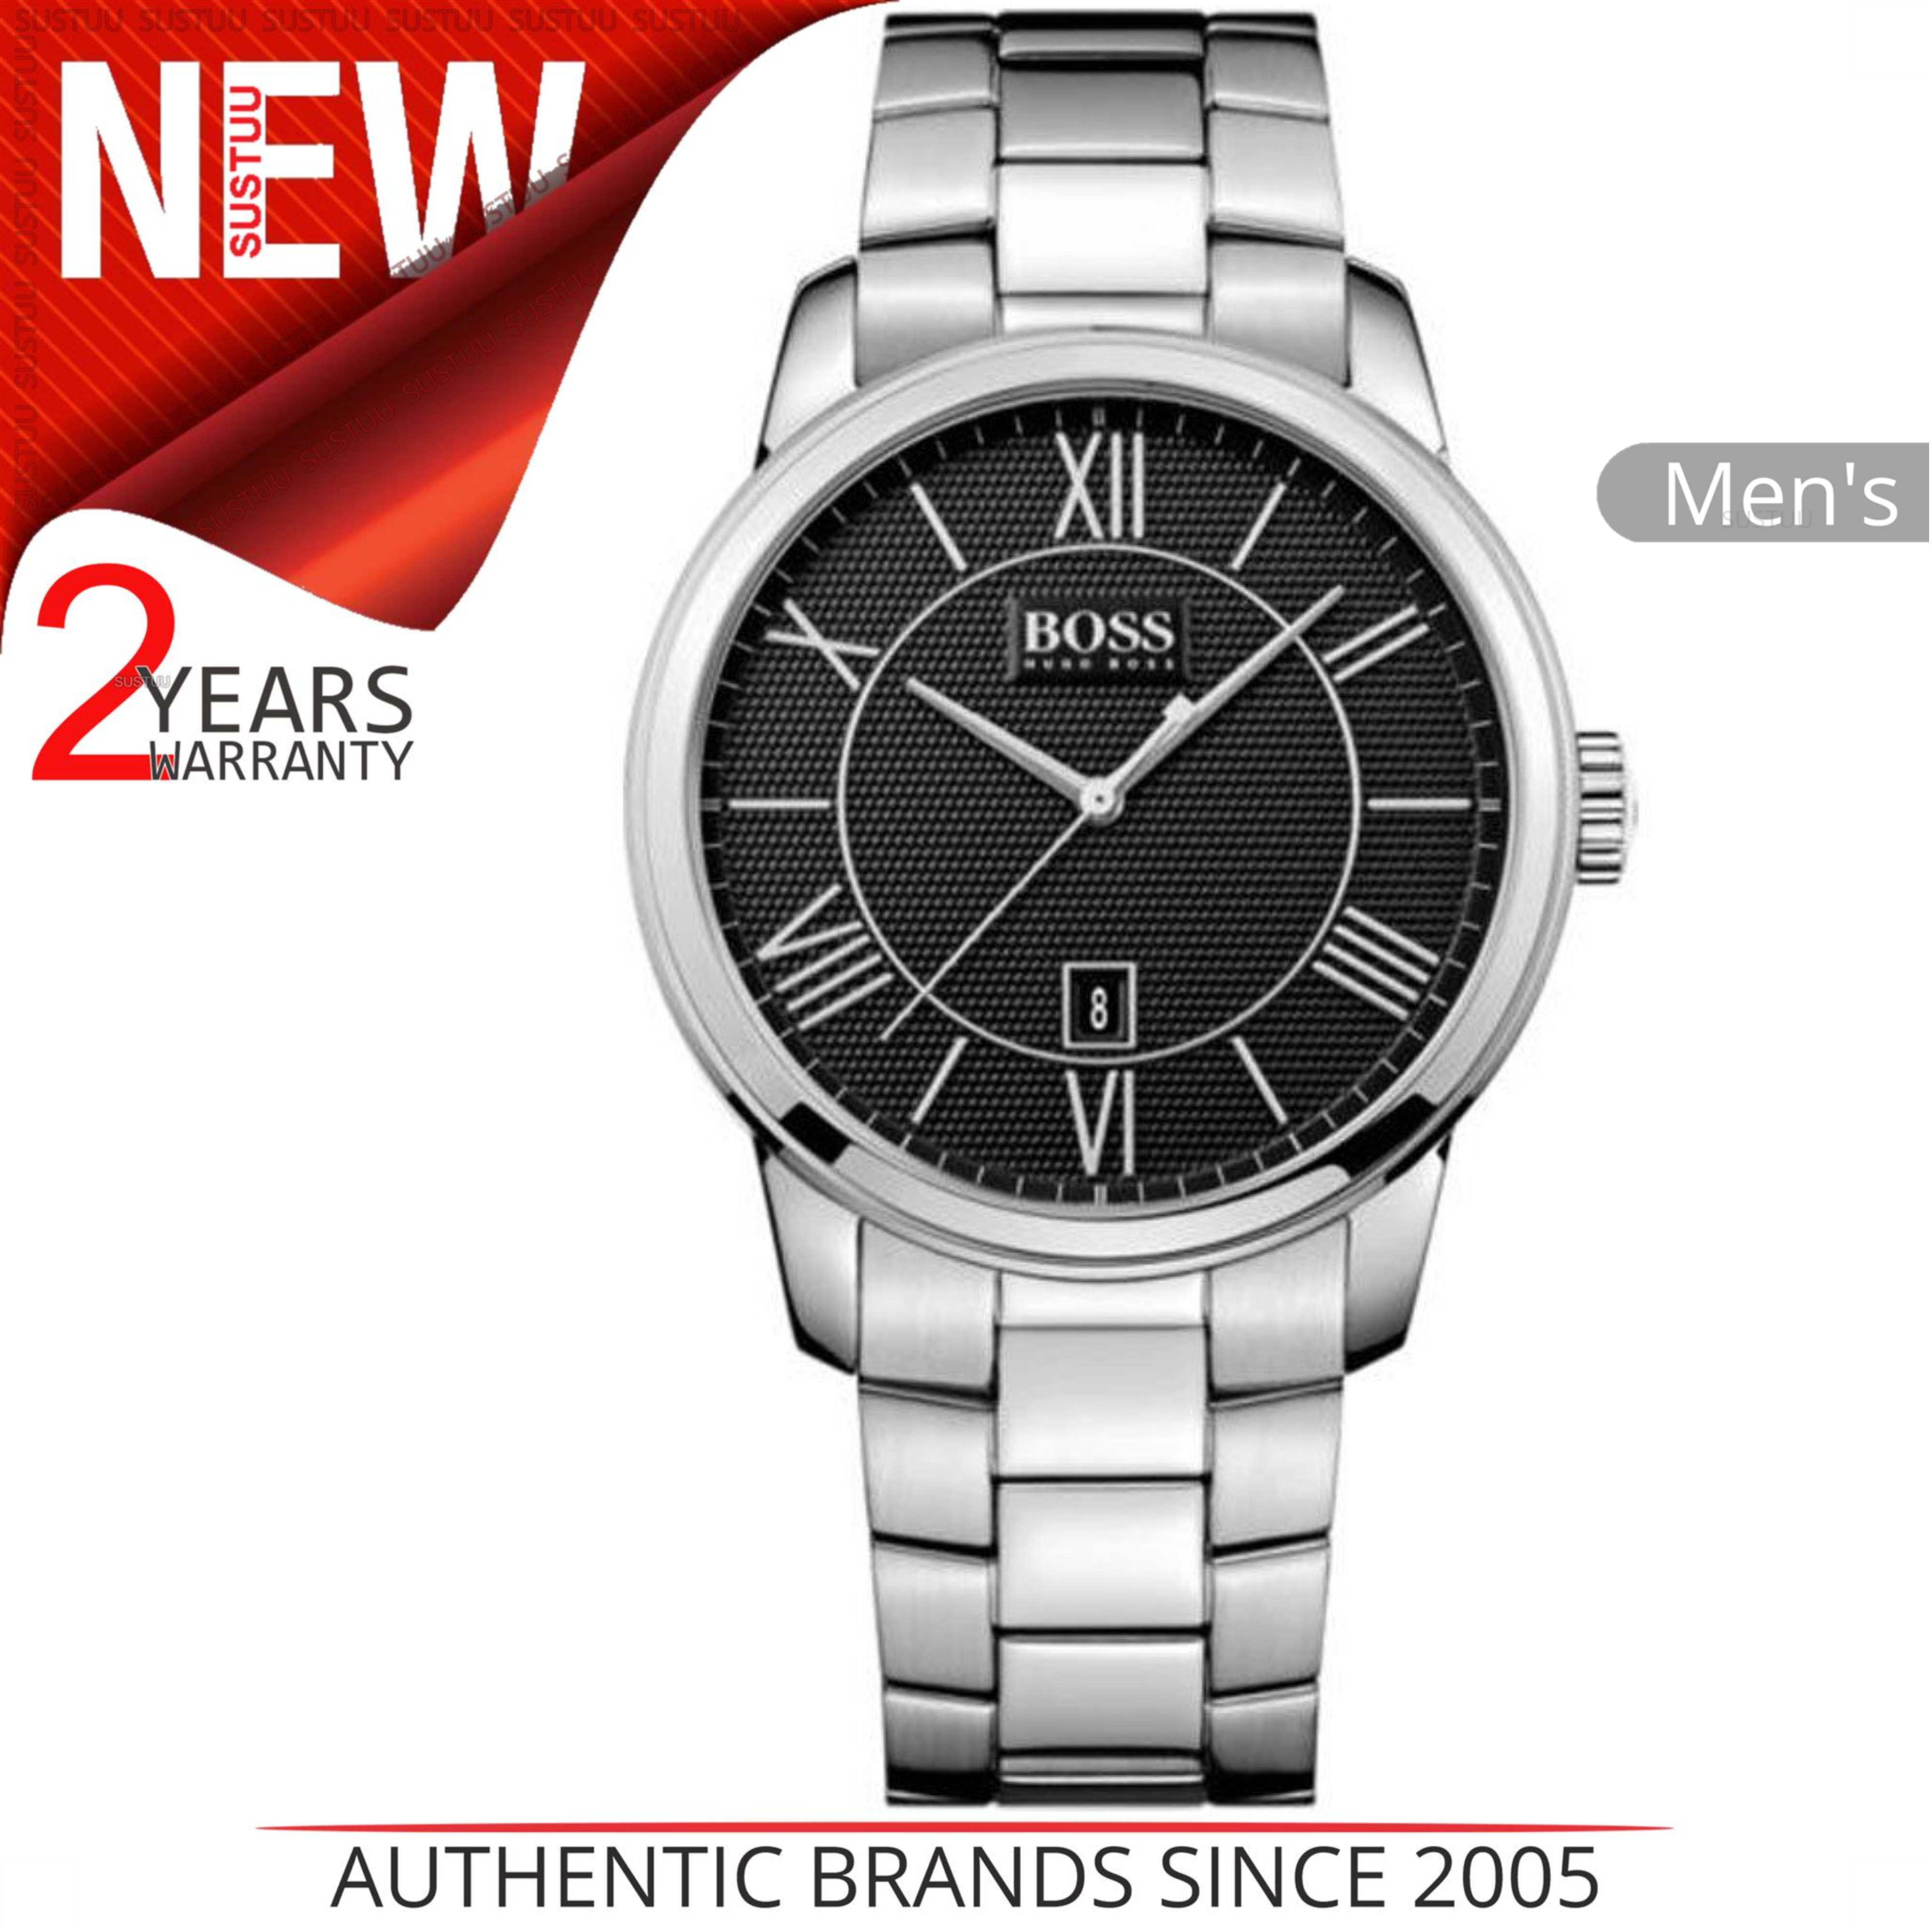 51a30f21a7b4 Sentinel Hugo Boss Classic Men s Formal Watch│Black Dial│Silver Tone  Bracelet│HB1512977